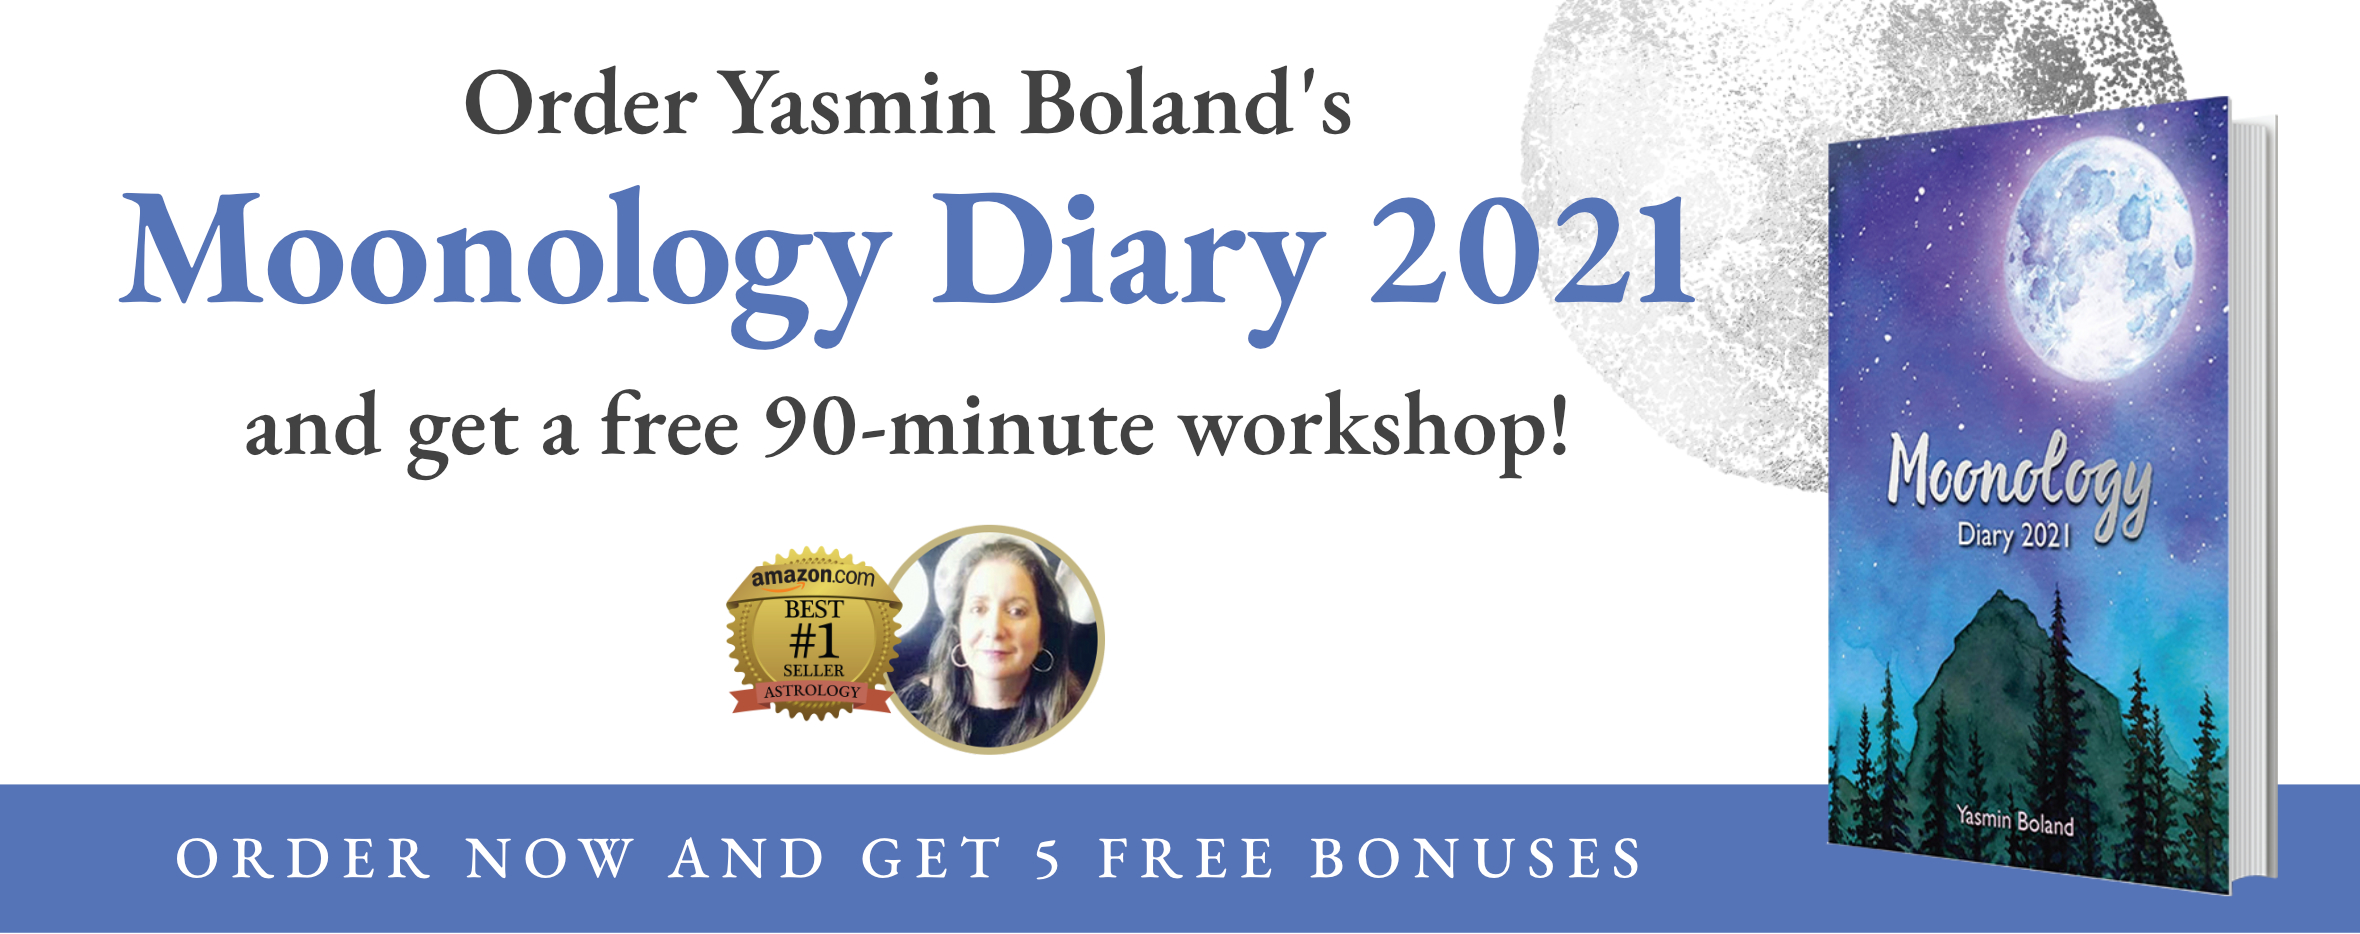 https://members.yasminboland.com/diary-owners-area/